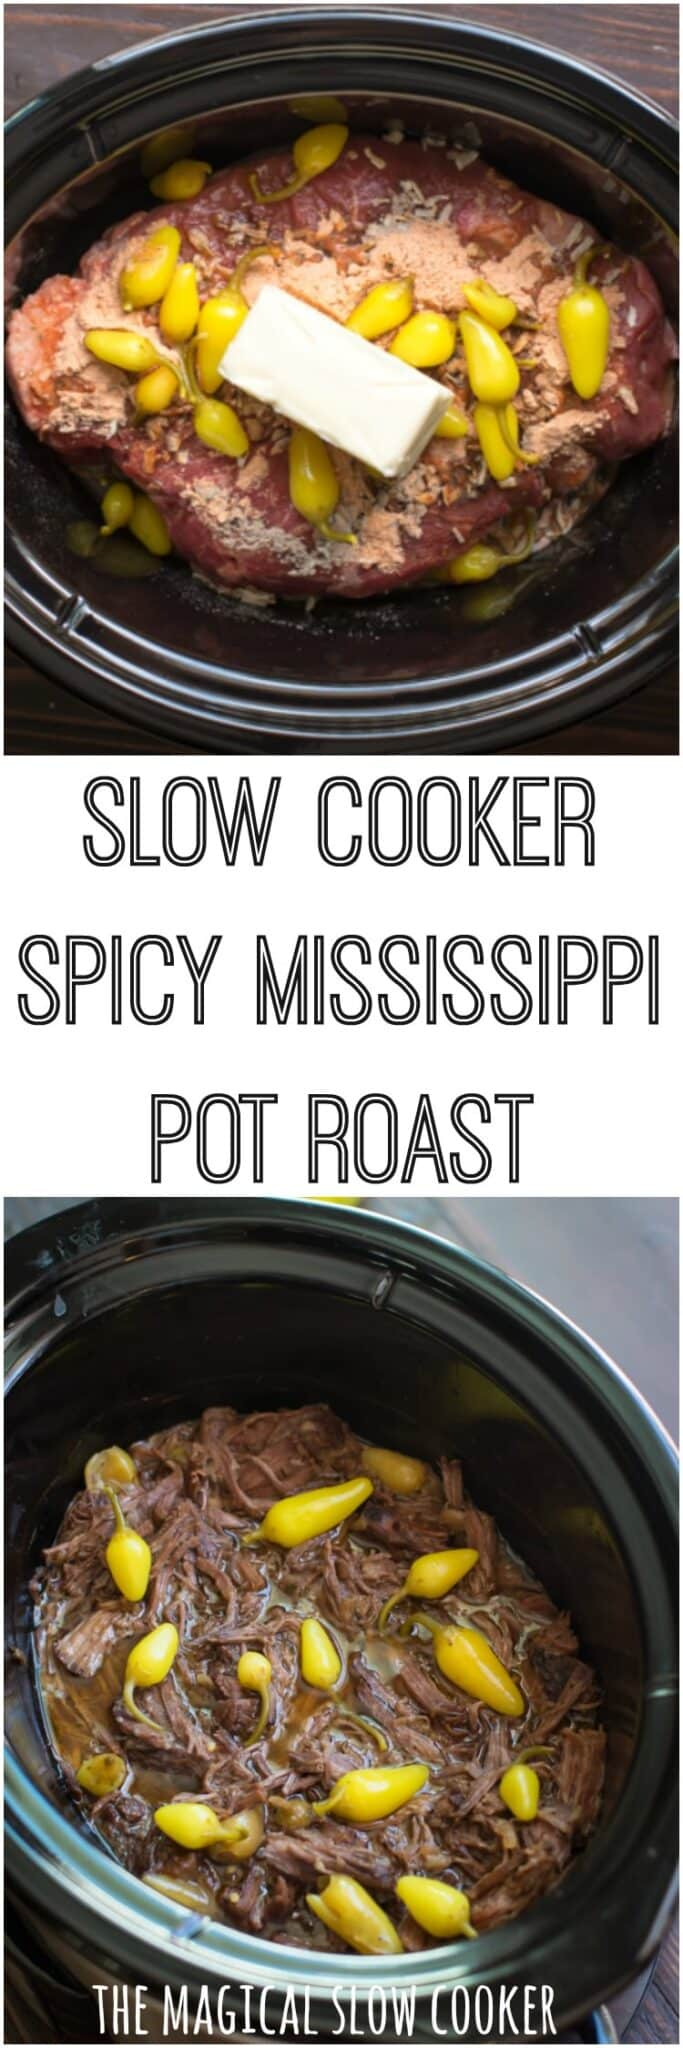 Slow Cooker Spicy Mississippi Pot Roast